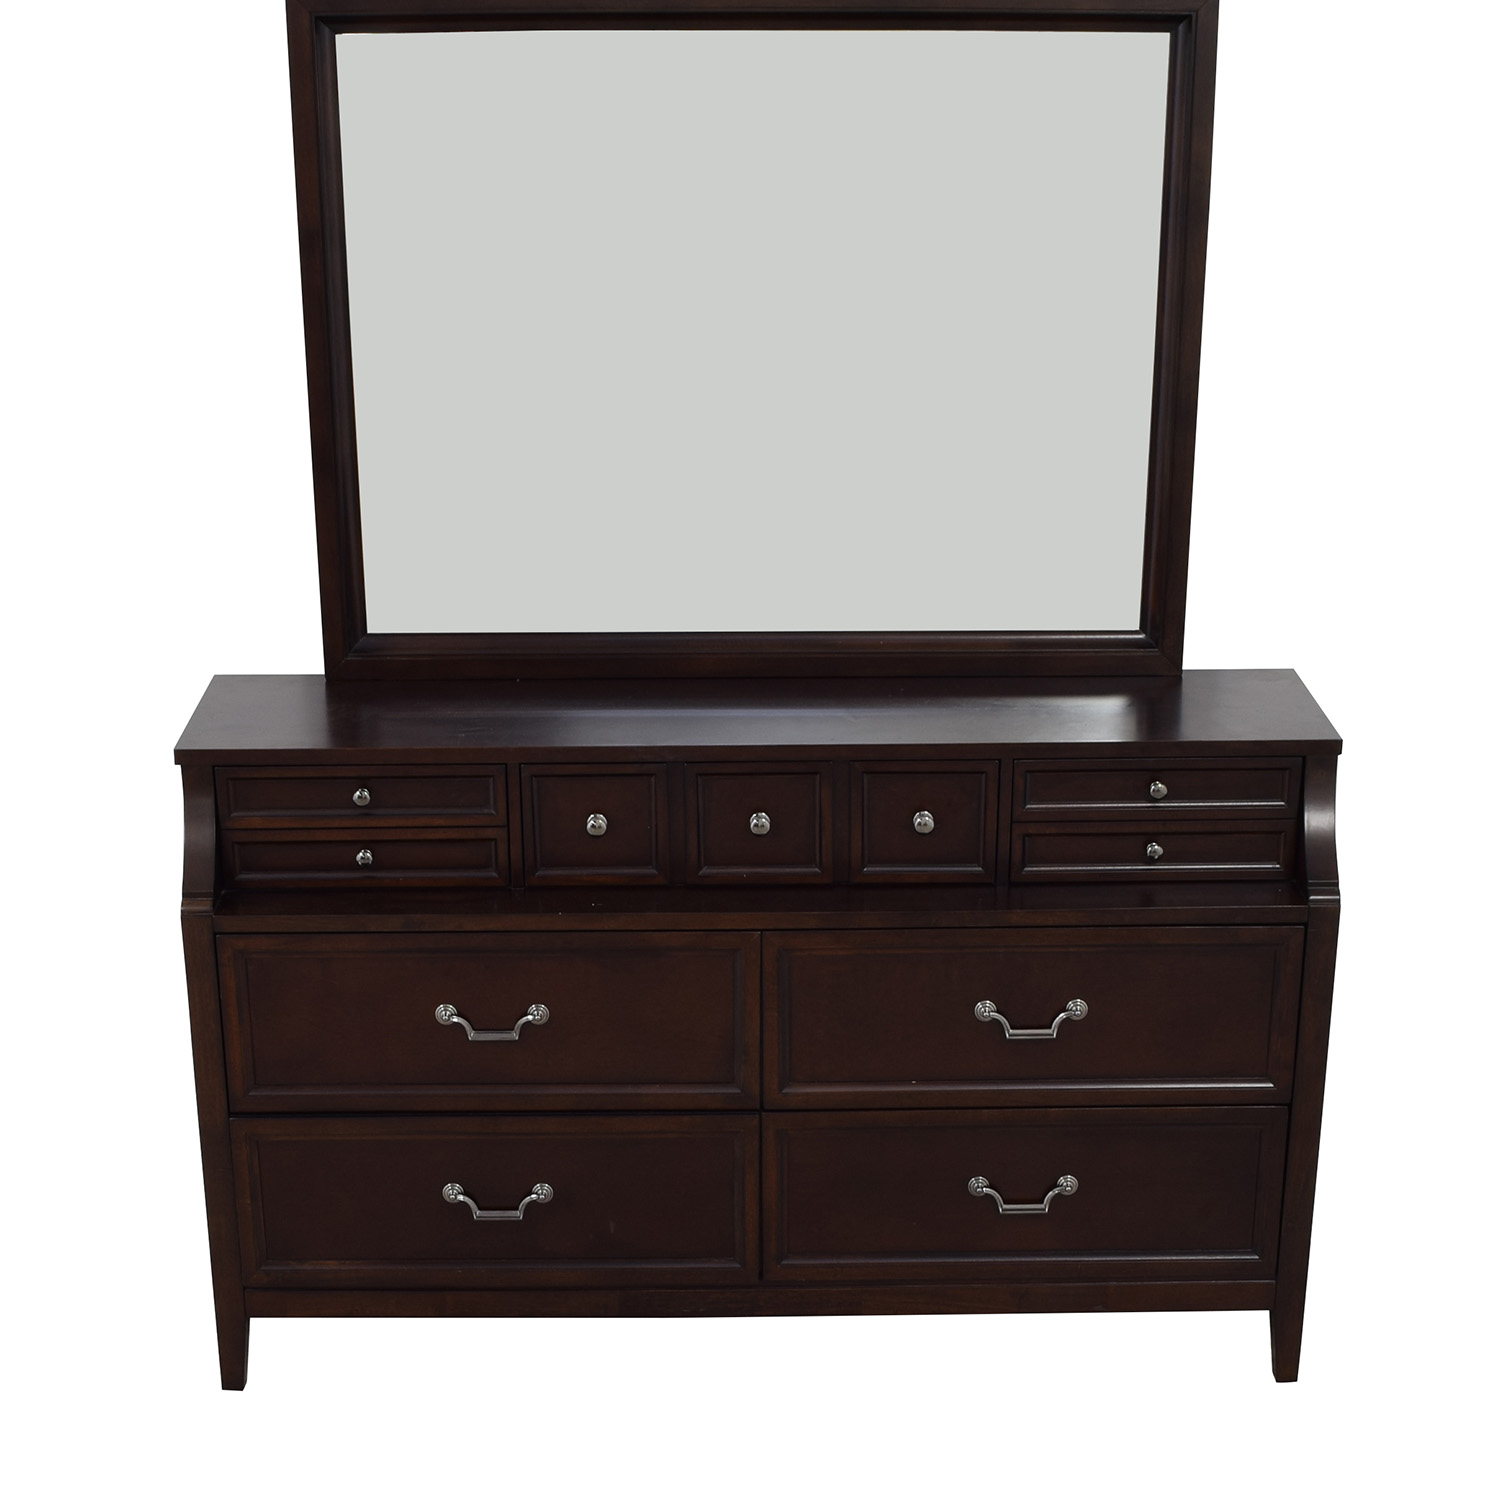 Raymour & Flanigan Raymour & Flanigan Seven-Drawers Wood Dresser with Mirror